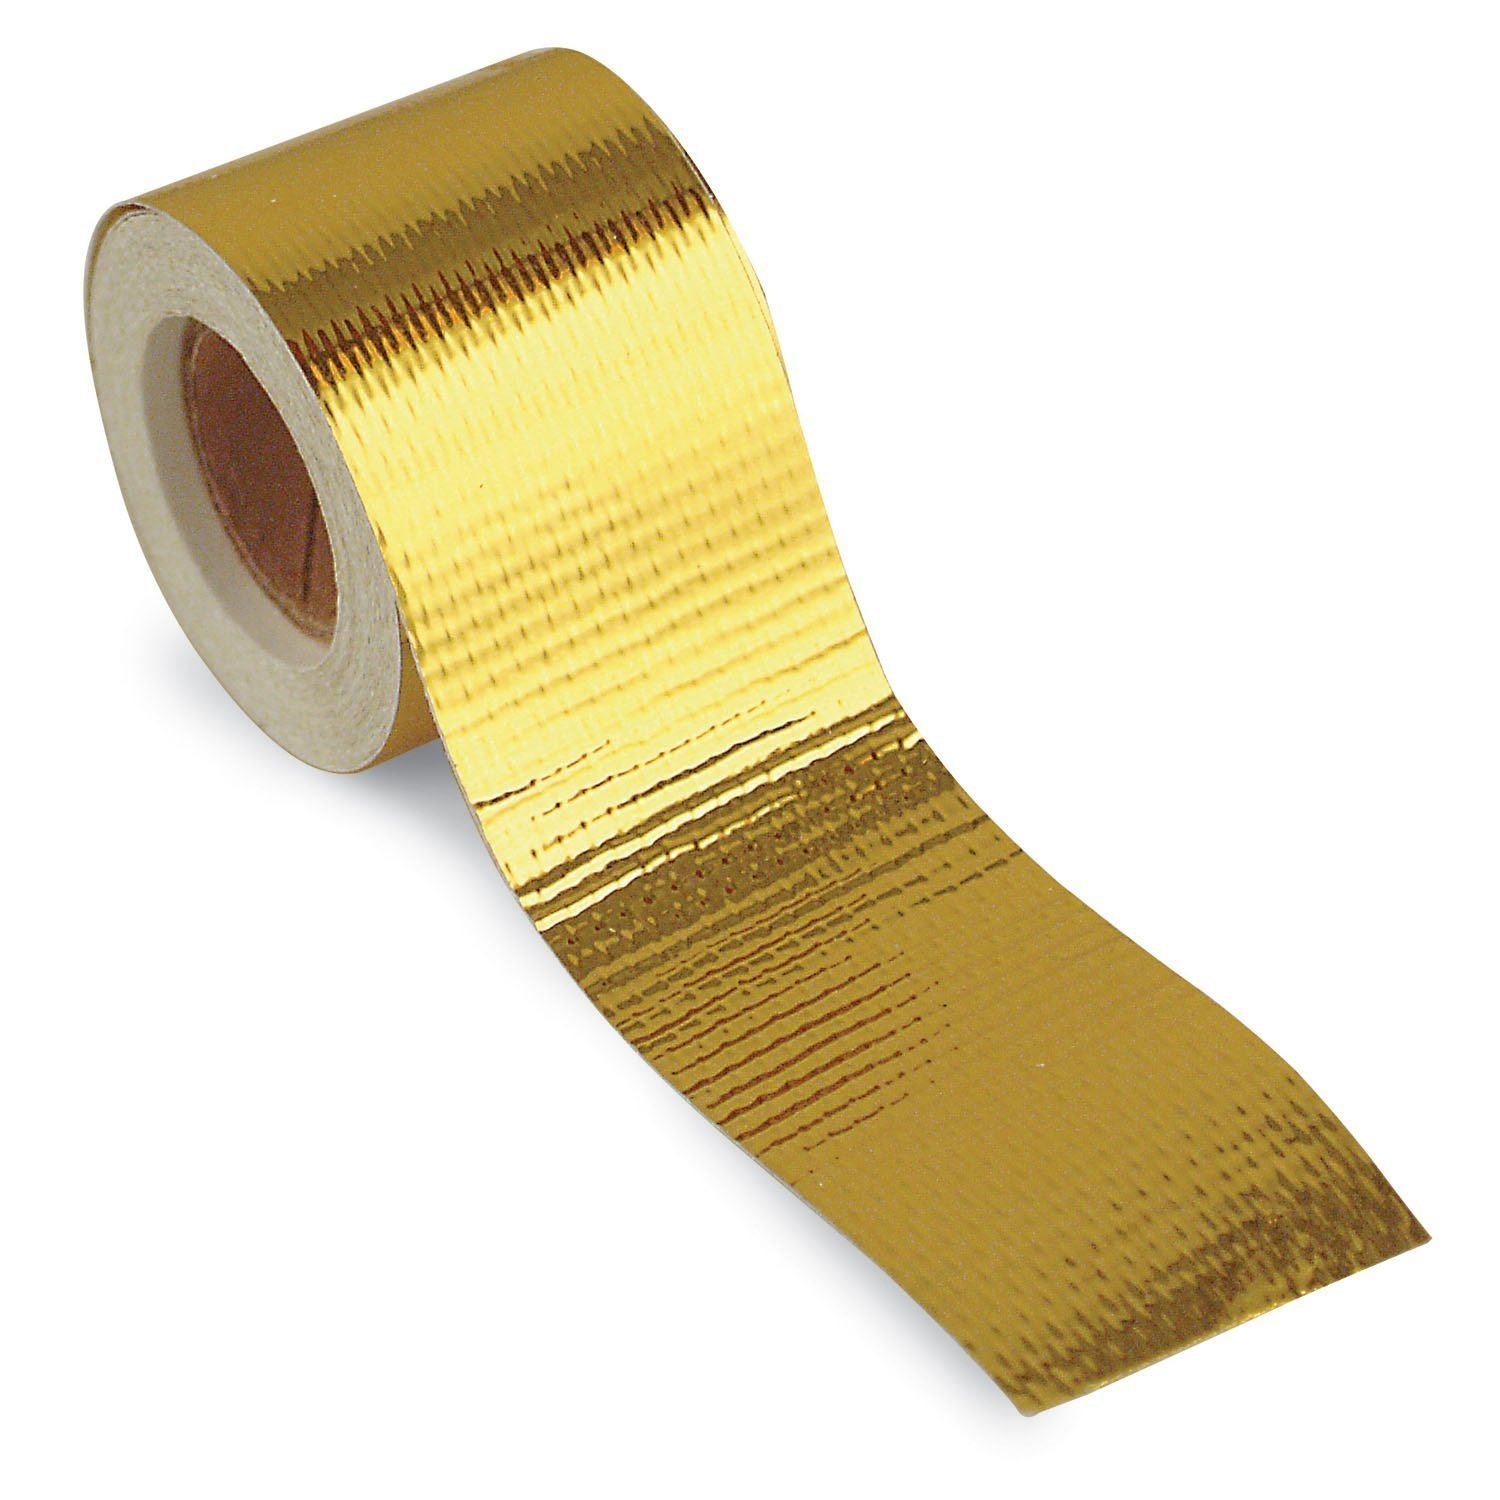 High-Temperature Heat Reflective Adhesive Backed Roll,Heat Wrap Tape High Temp Shield Reflective (Gold+2